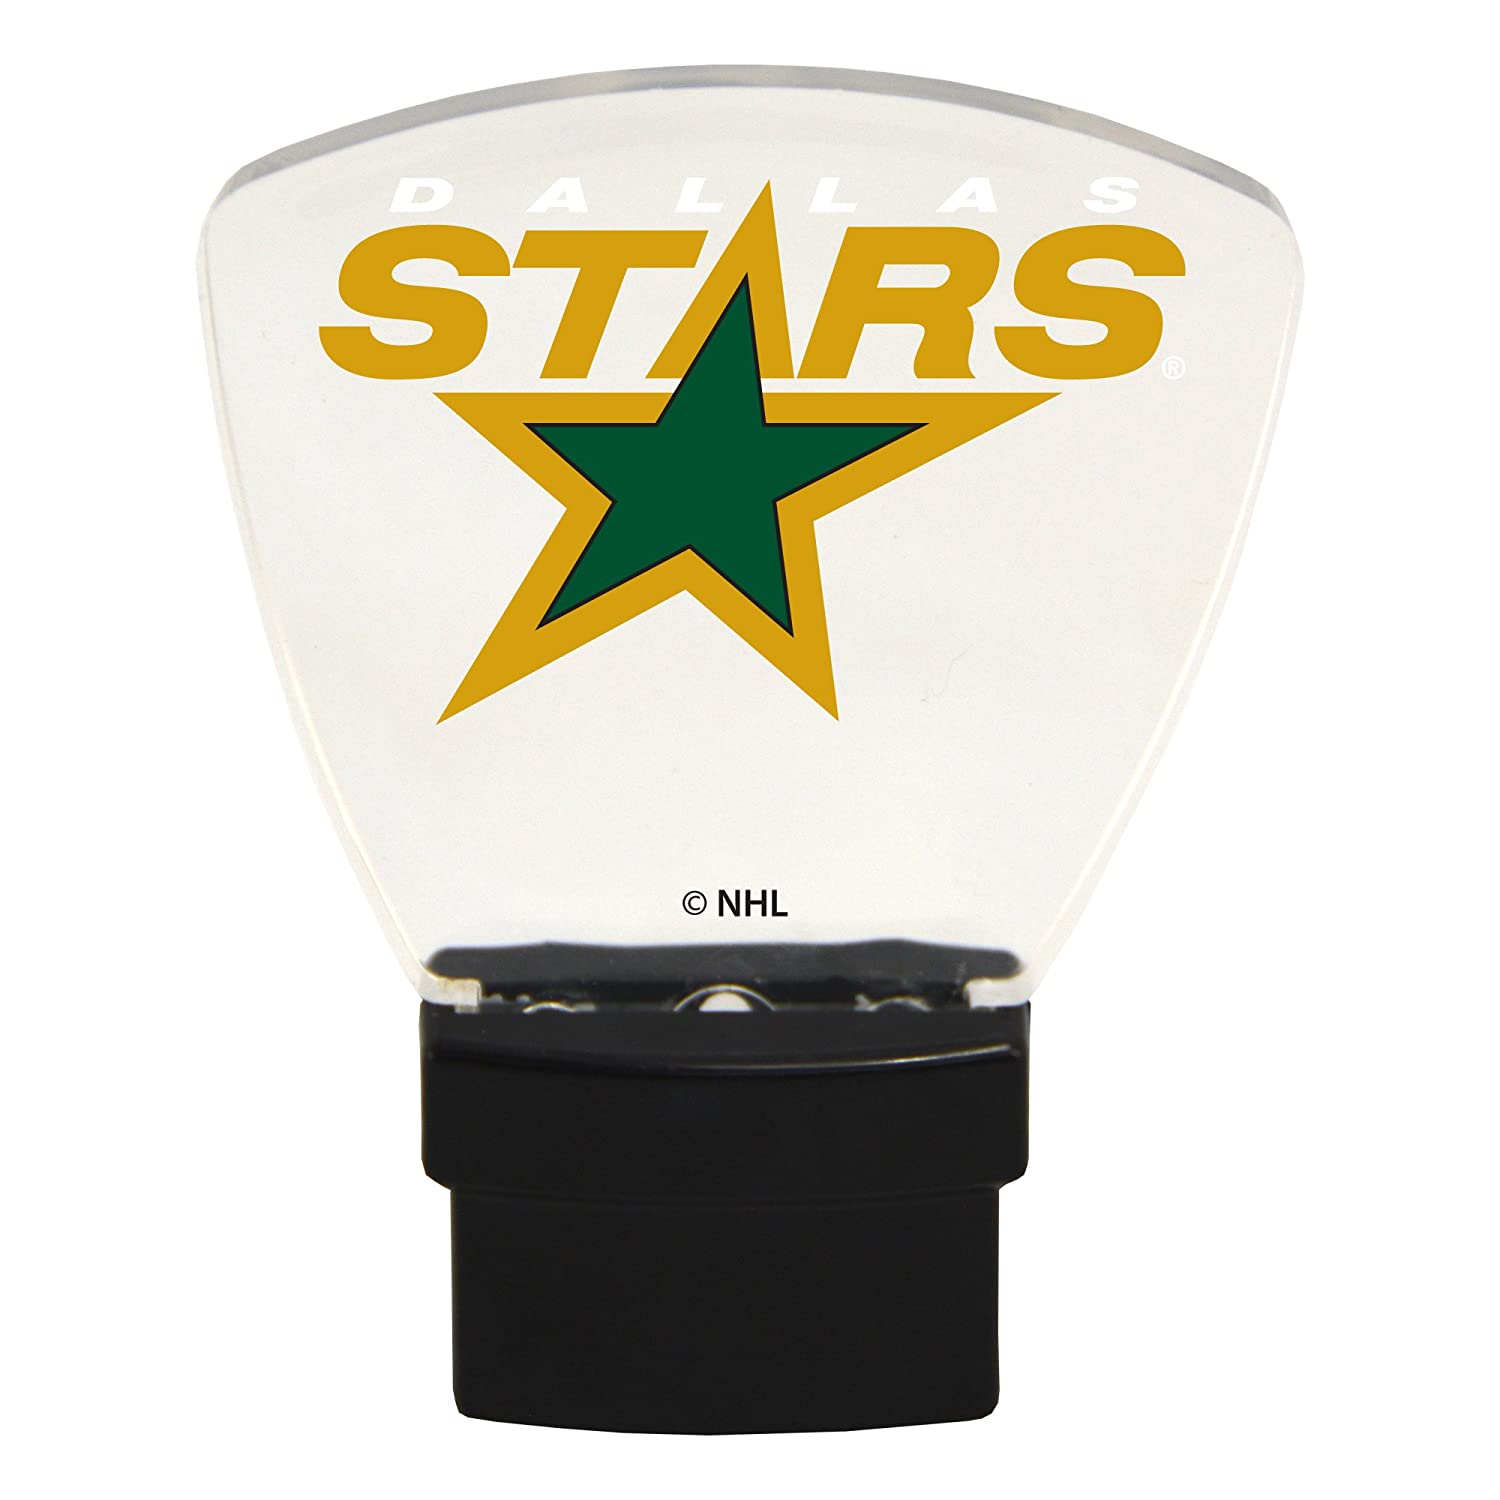 Dallas Stars Authentic Street Signs NHL Officially Licensed-LED NIGHT LIGHT-Super Energy Efficient-Prime Power Saving 0.5 watt Plug In-Great Sports Fan gift for Adults-Babies-Kids Room /…